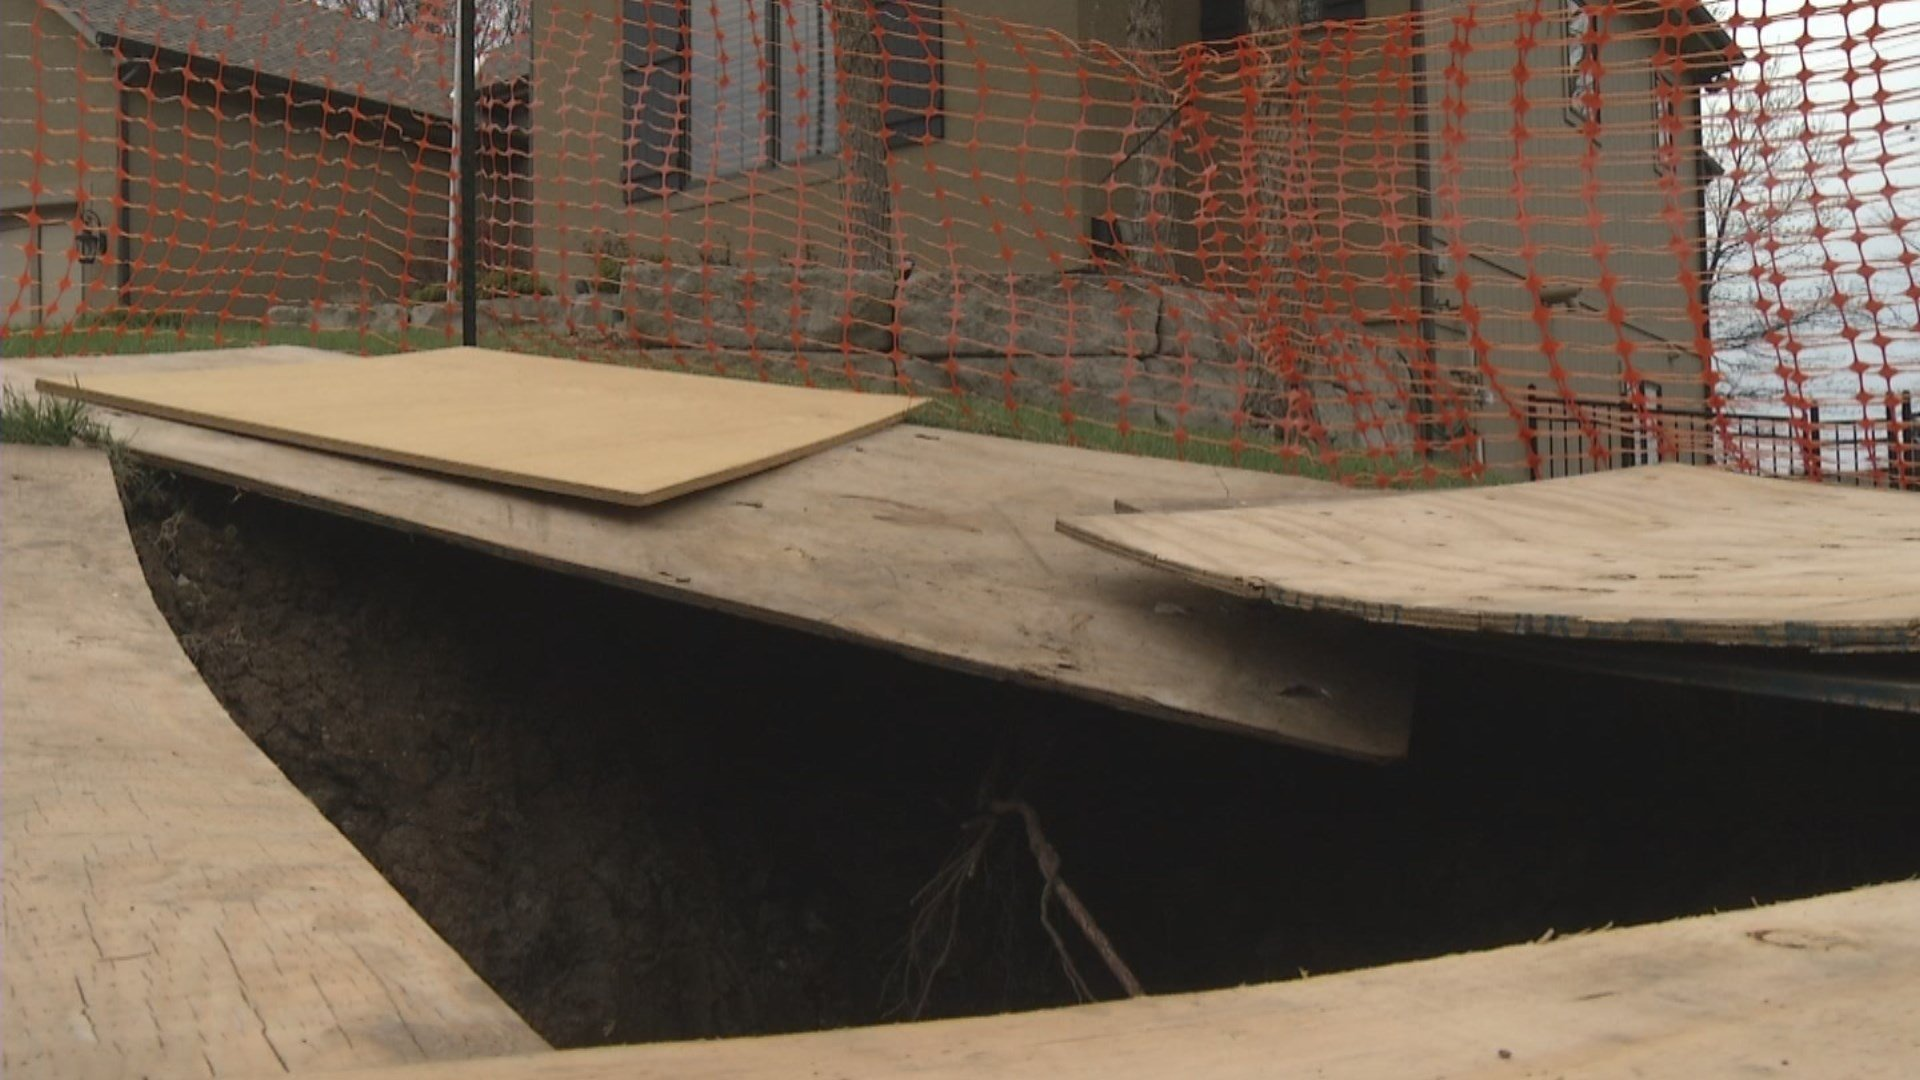 Homeowner says botched city project left him with giant hole in front yard